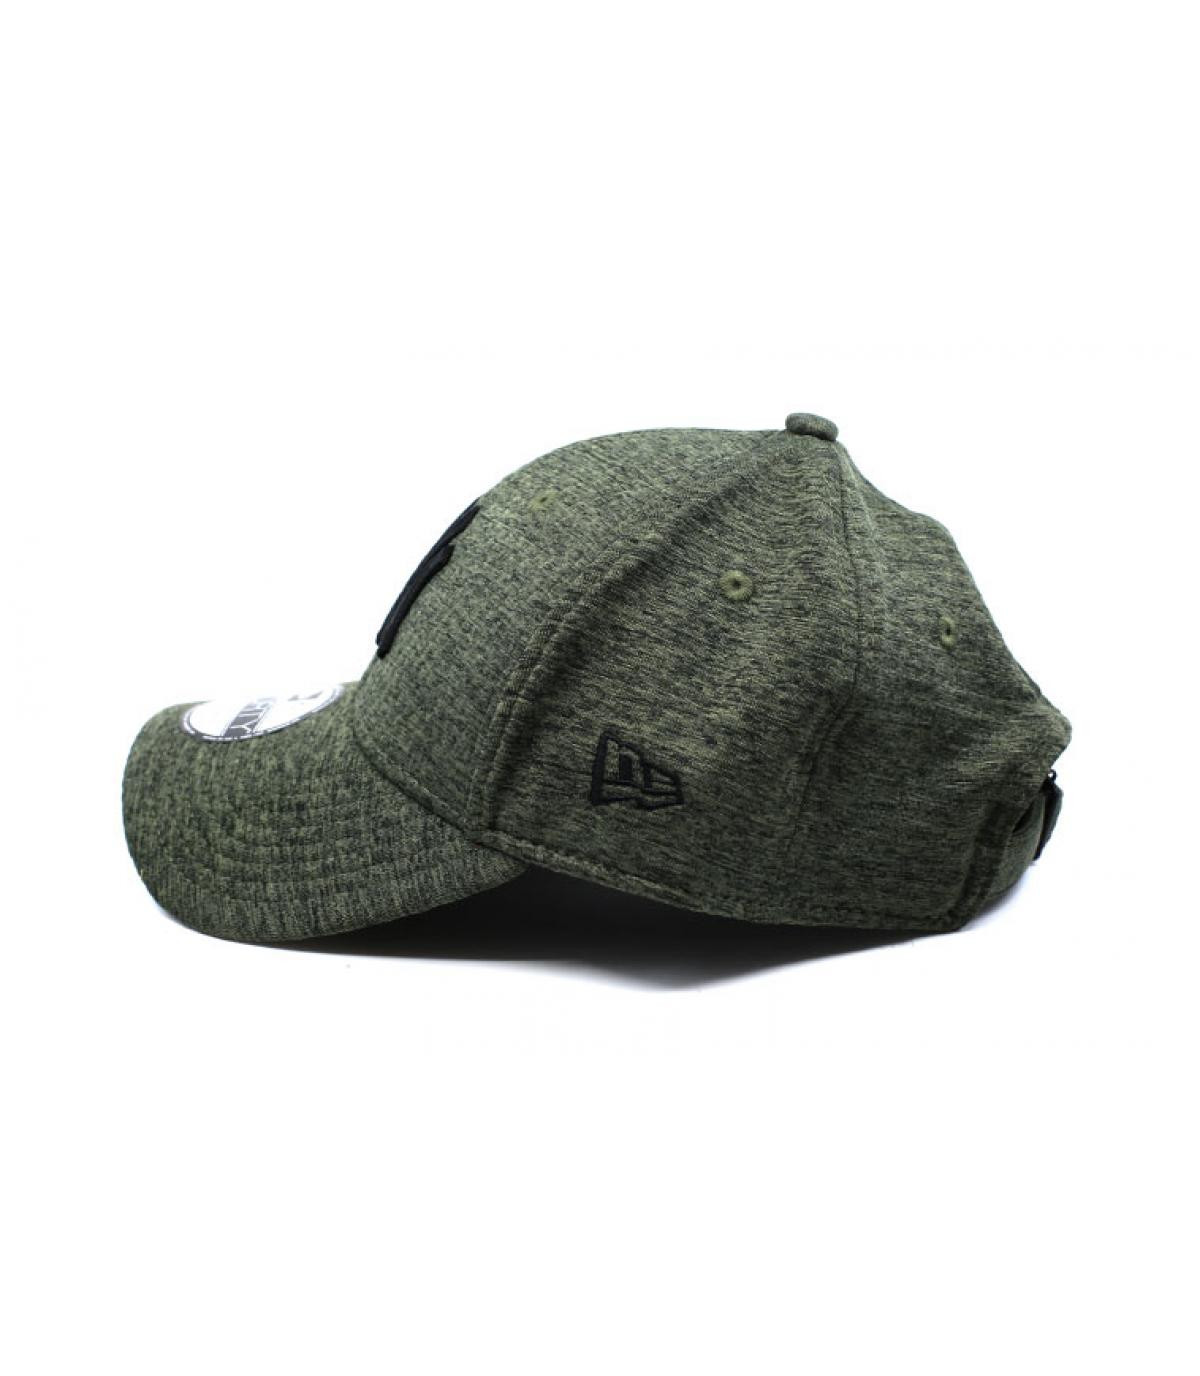 Details Cap NY Dryswitch Jersey 9Forty olive black - Abbildung 4